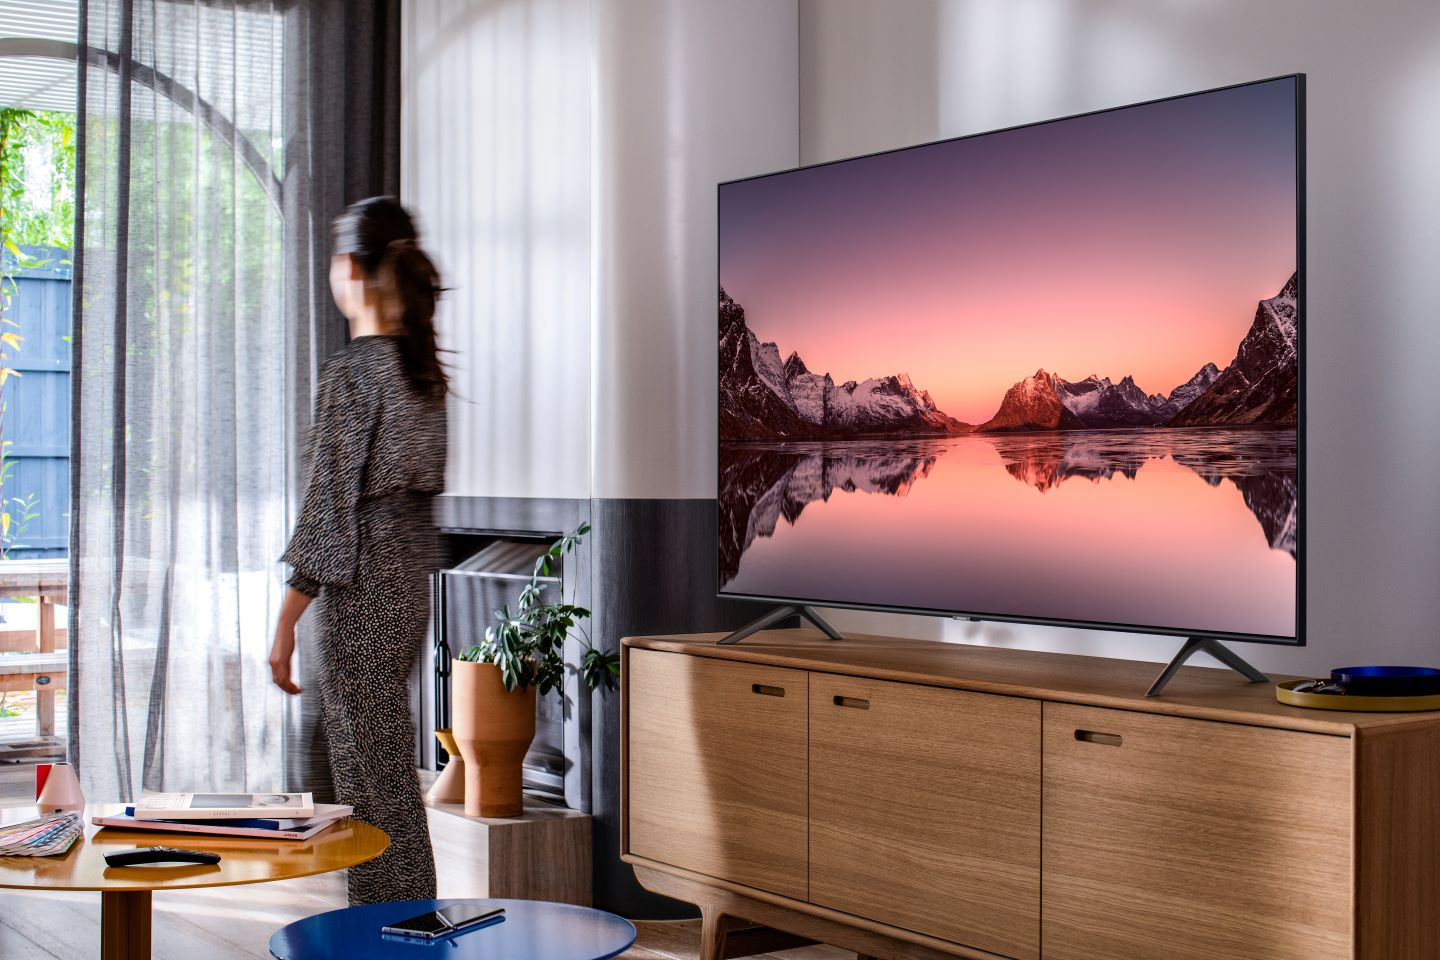 TV Buying Guide: A Need-to-Know to Know What You Need